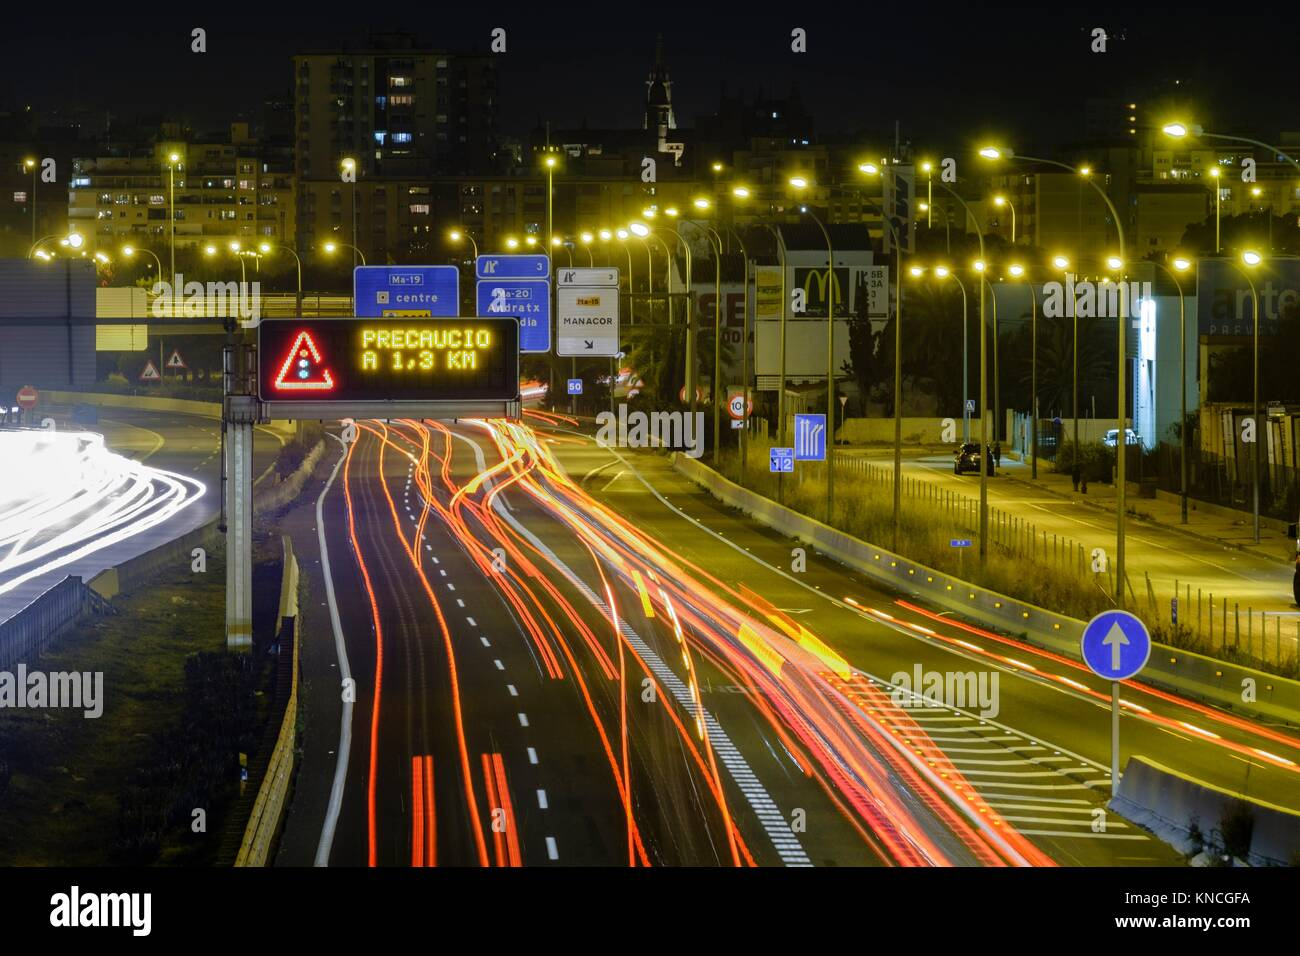 Ma-19 ,Autopista de Levante , Palma, Mallorca, balearic islands, spain, europe. - Stock Image